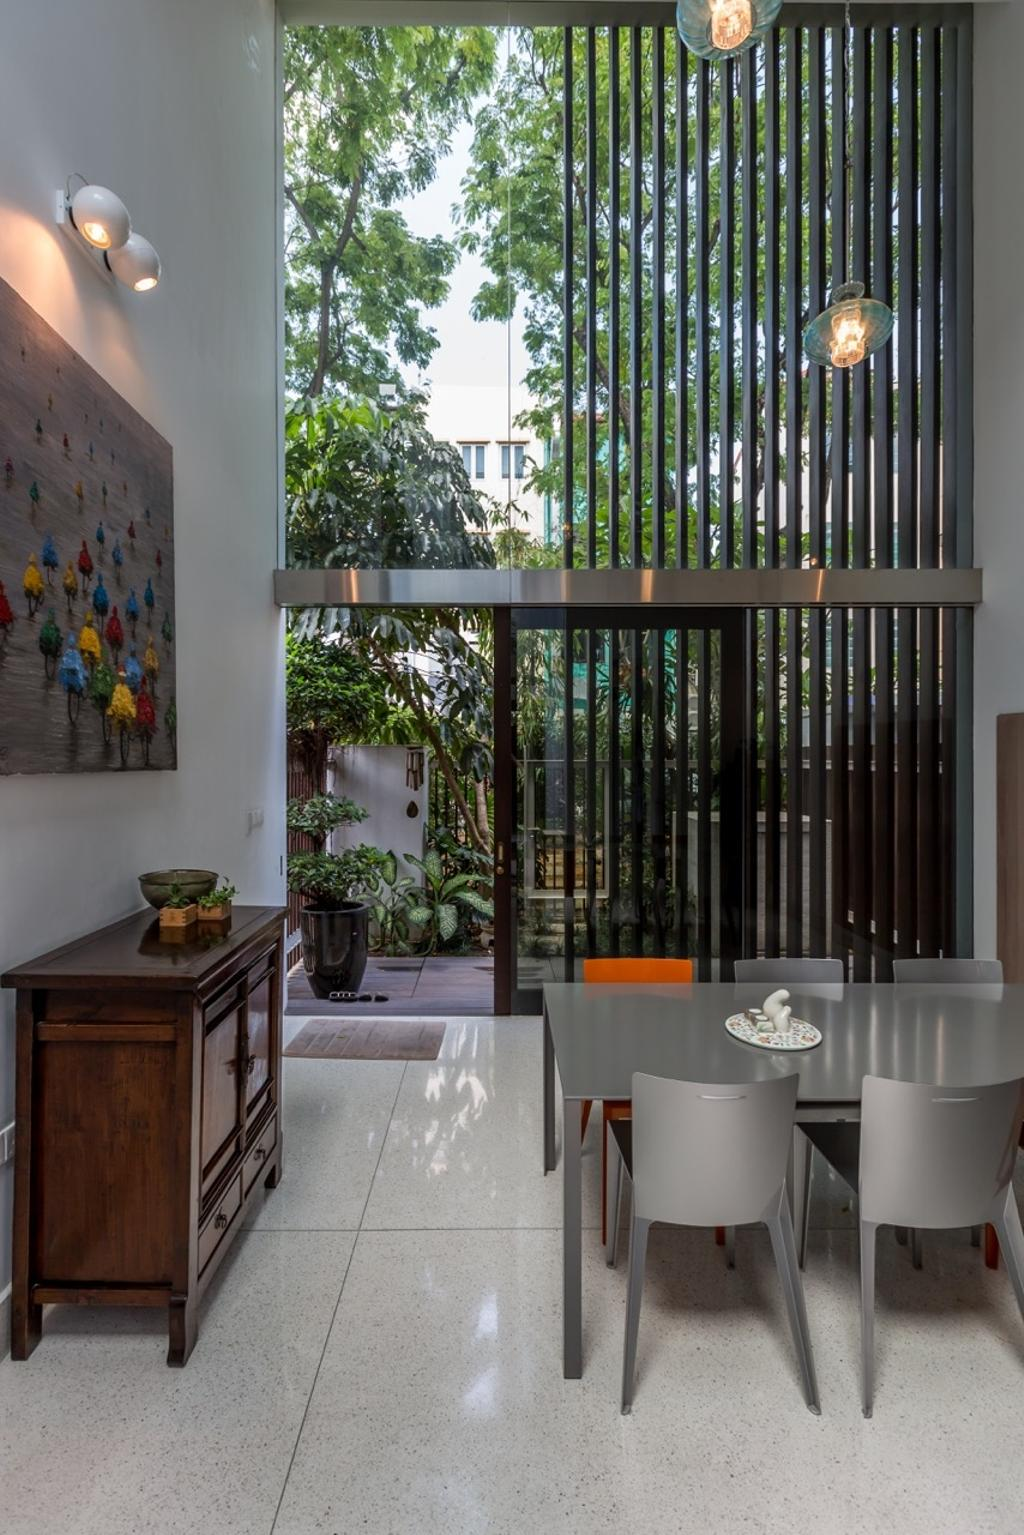 Contemporary, Landed, Dining Room, Onan Road, Architect, EZRA Architects, Hanging Light, Pendant Light, Wallart, Wall Art, Painting, Wooden Display Cabinet, Dining Table, Full Length Glass Window, Flora, Jar, Plant, Potted Plant, Pottery, Vase, Bonsai, Tree